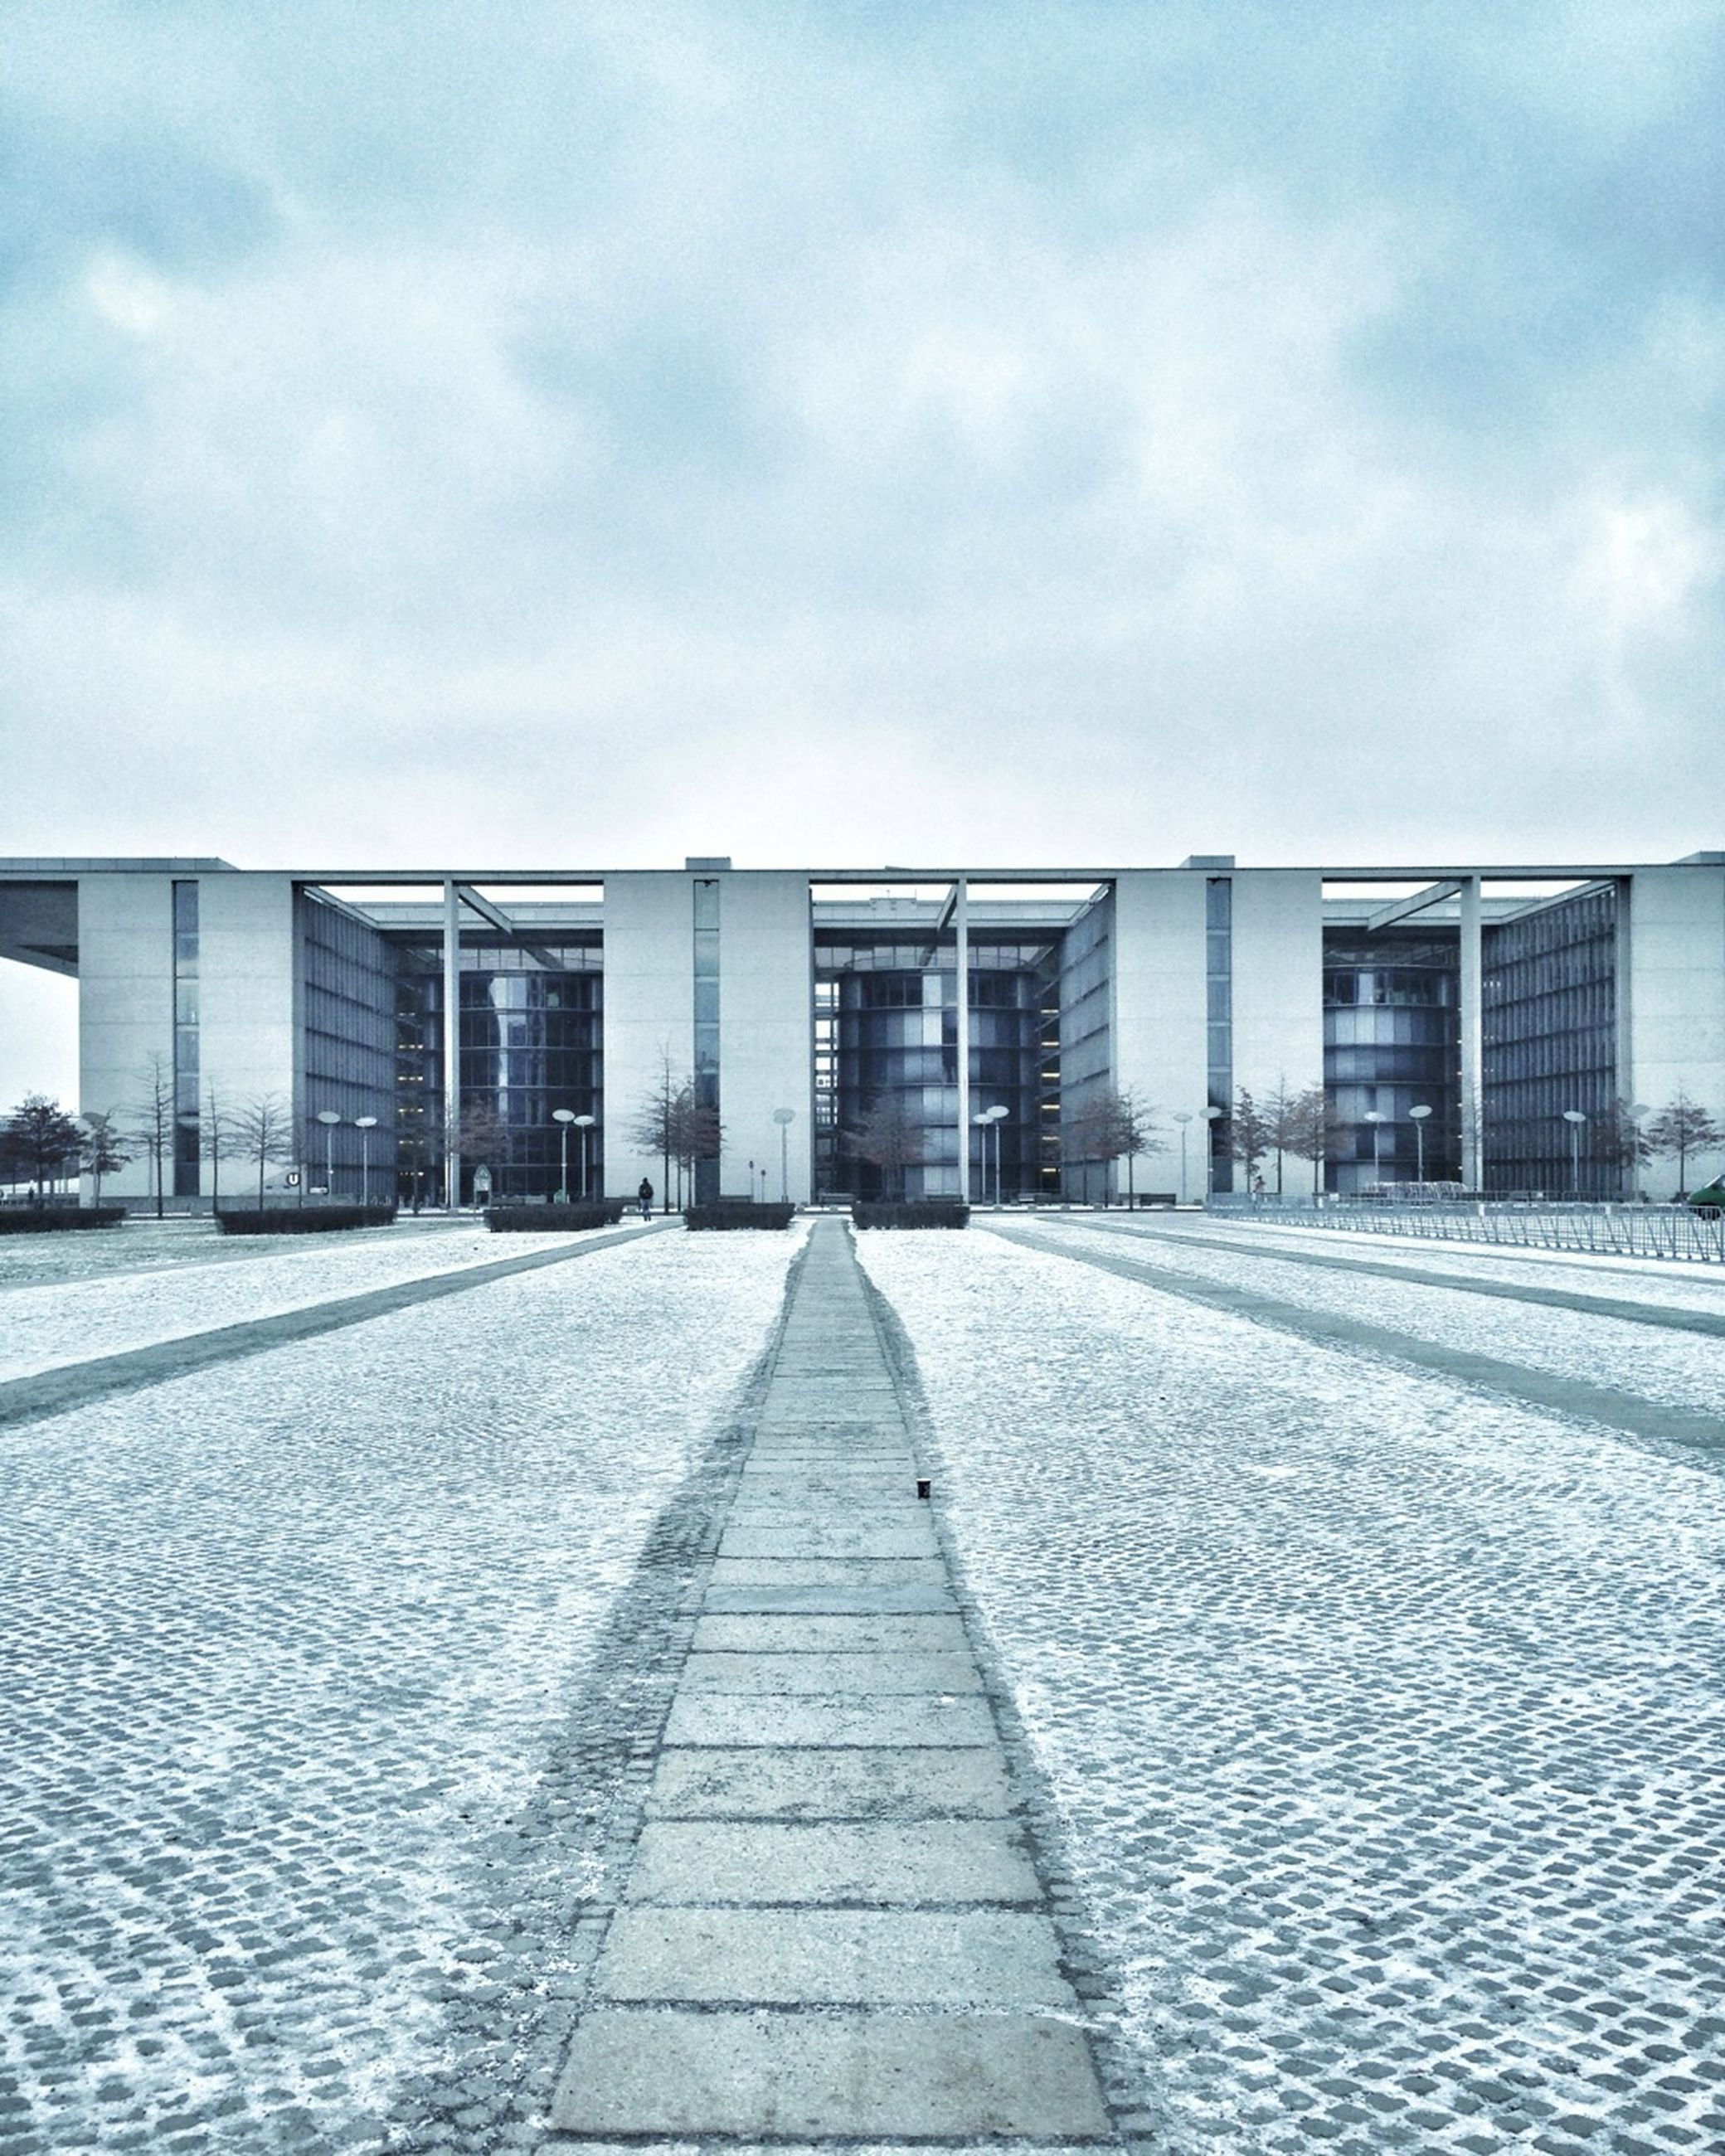 the way forward, sky, diminishing perspective, architecture, built structure, vanishing point, cloud - sky, empty, building exterior, long, cloud, walkway, cloudy, day, cobblestone, narrow, in a row, pathway, outdoors, footpath